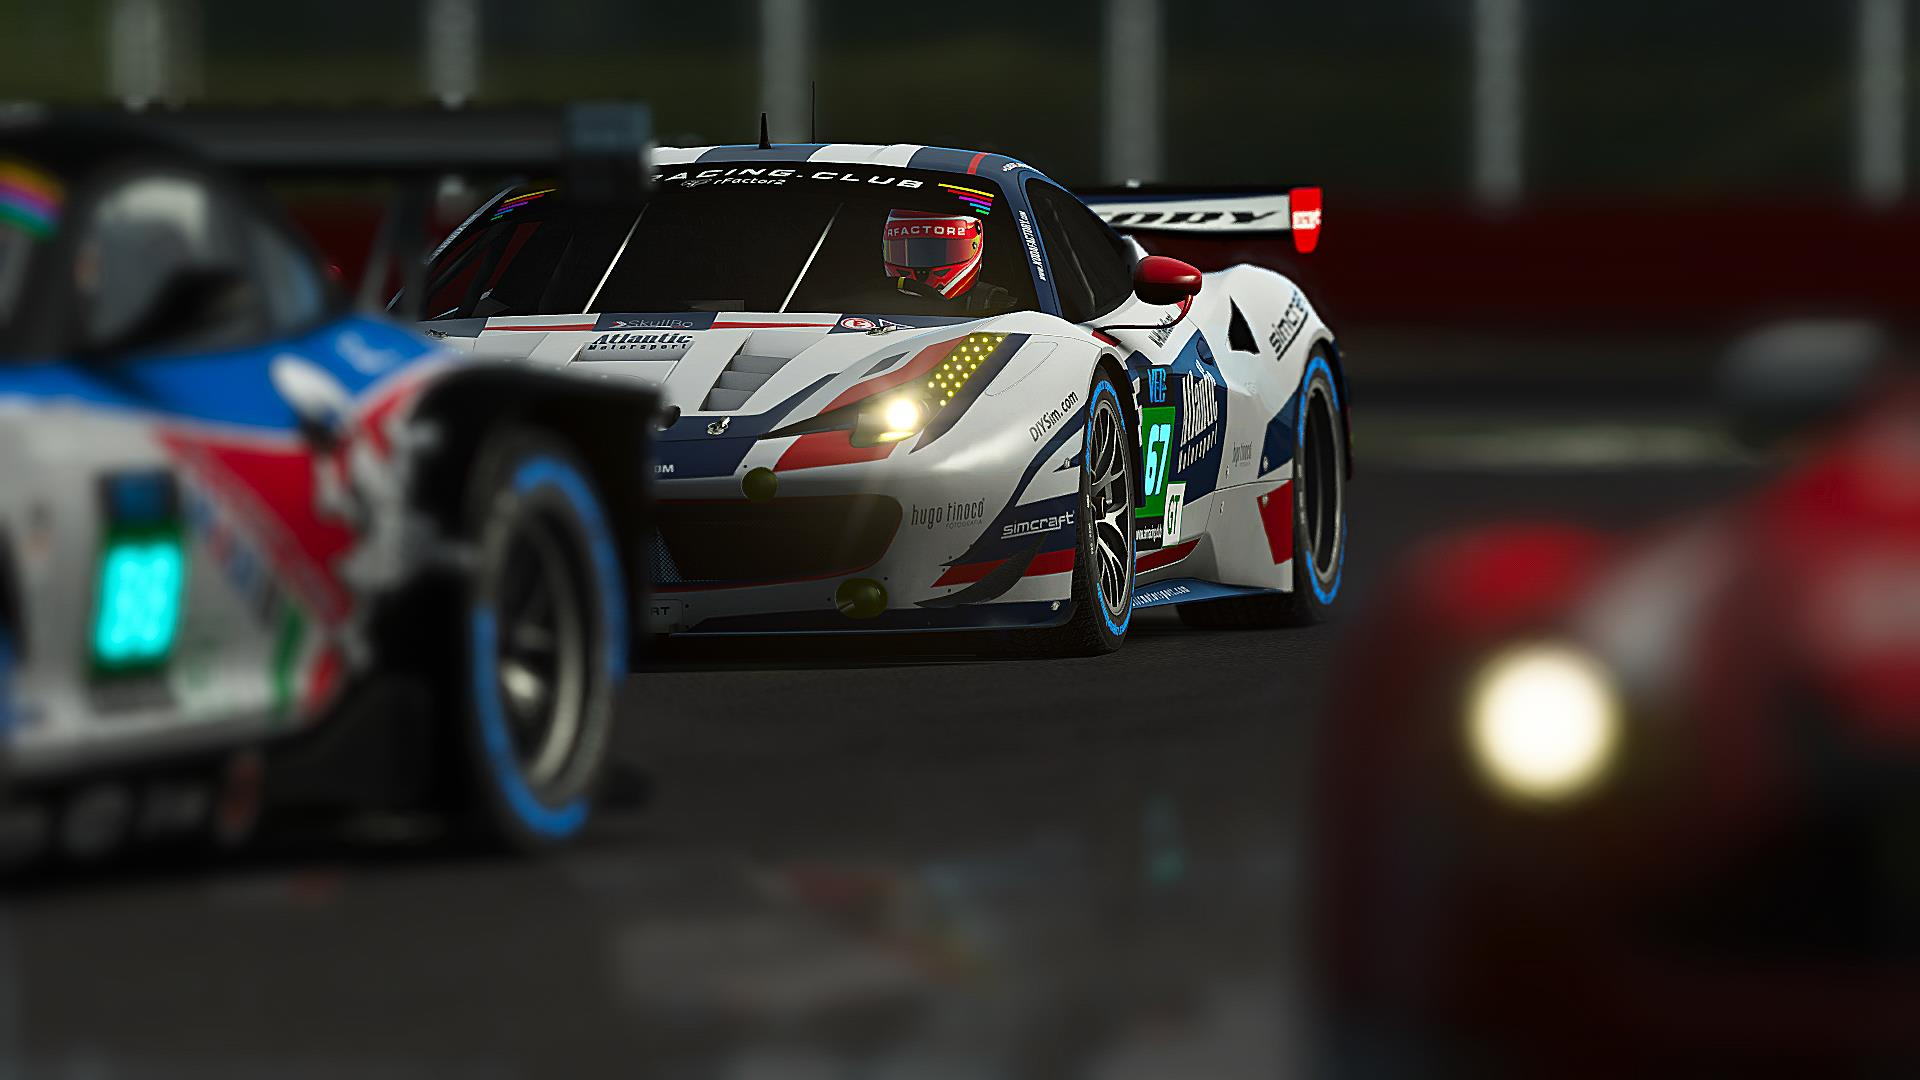 Atlantic Motorsport Ferrari F458 #67 finished P4 in the 8 hours of ...